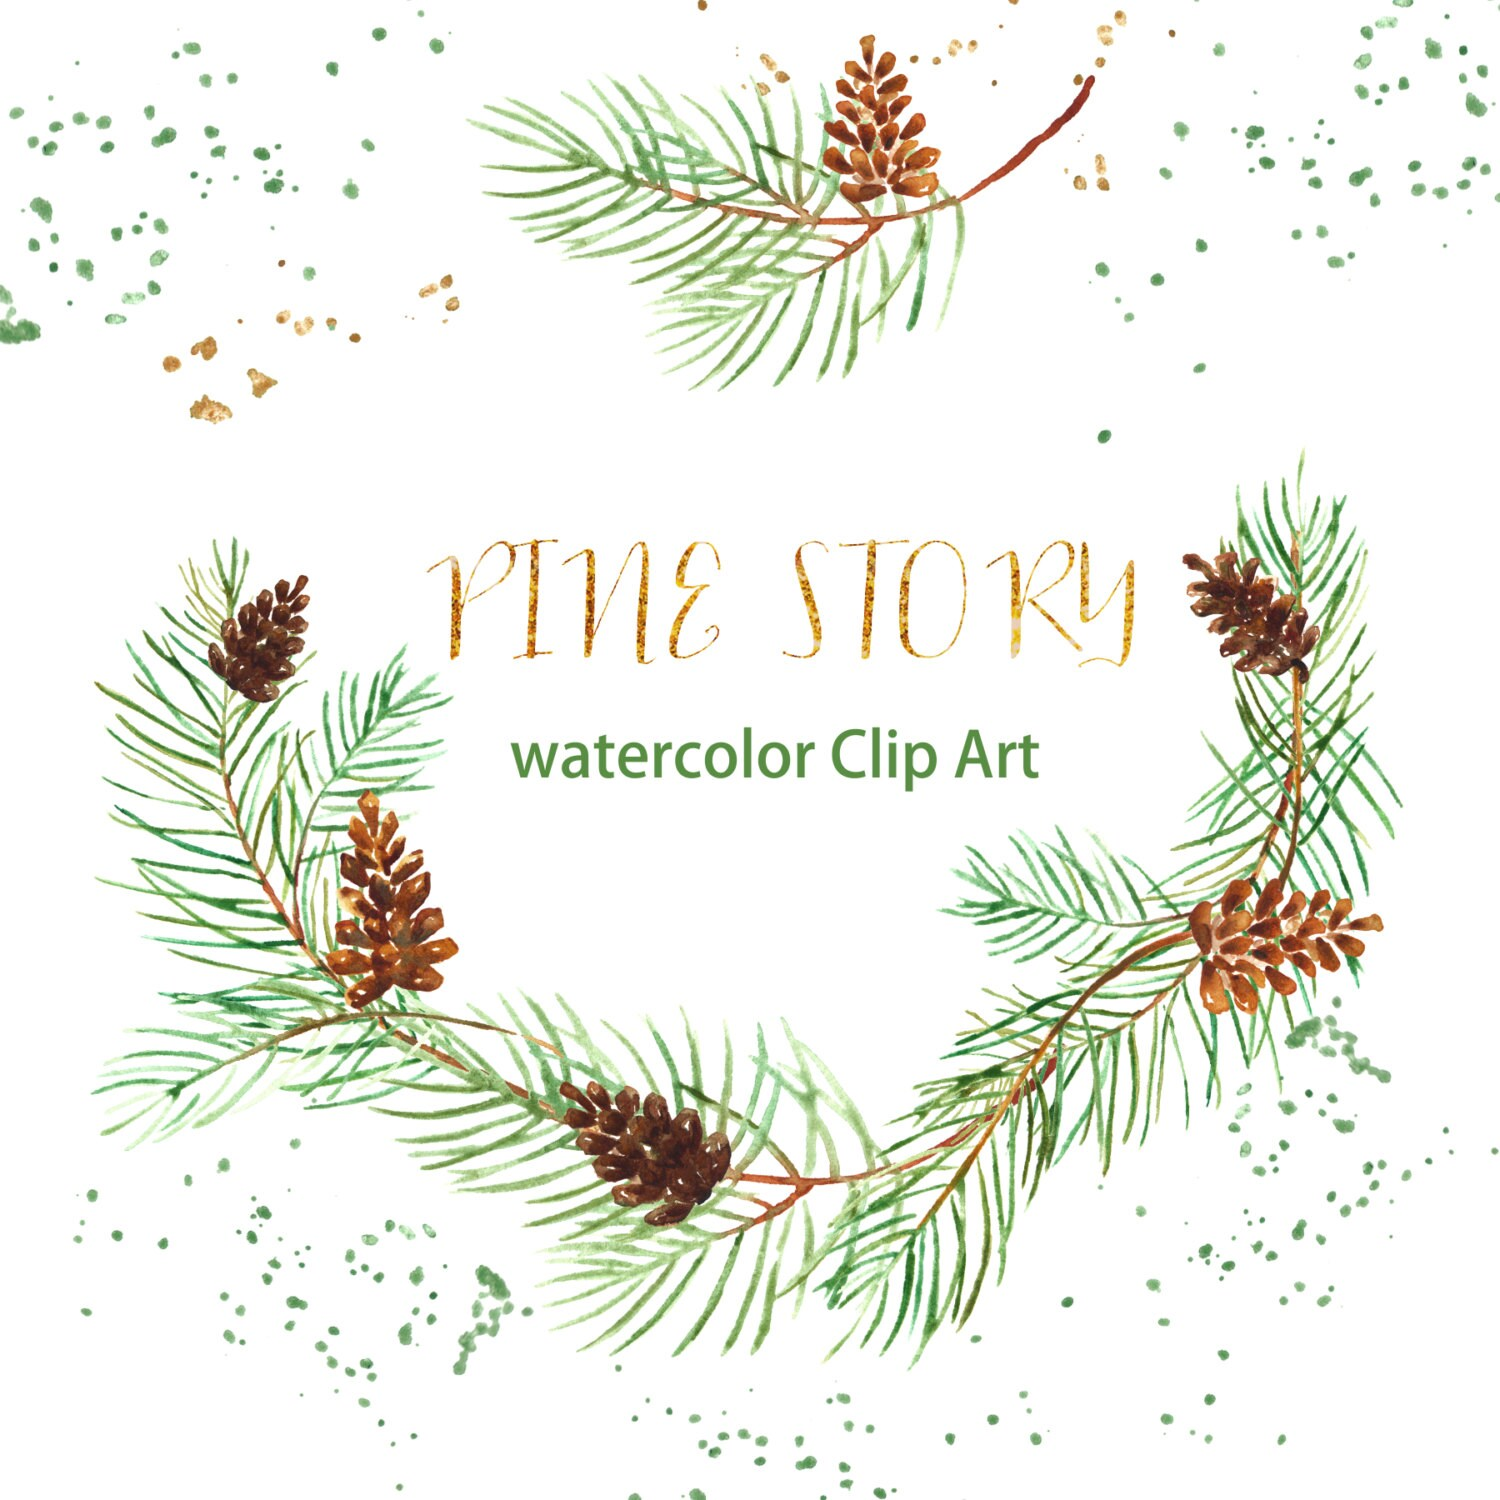 Pine Watercolor clip art hand drawn. Winter watercolor light